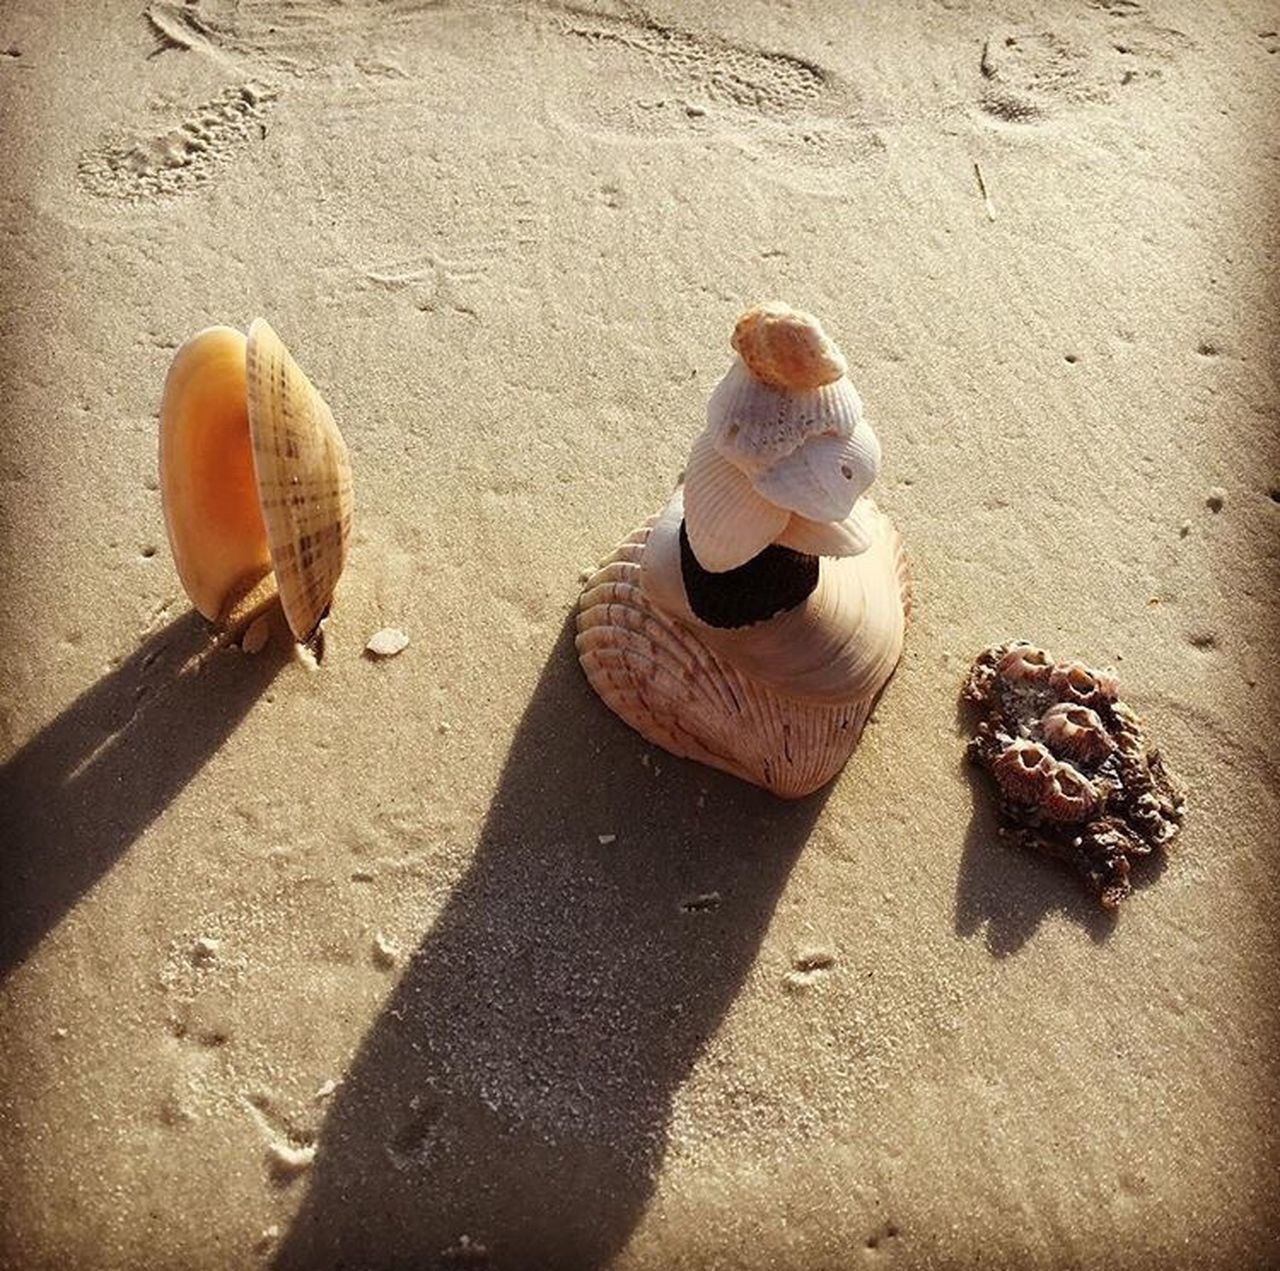 🐚Shell Stacking🐚 Shadow Sunlight Sitting Sand Sunny Summer Day Outdoors Vacations EyeEmBestPics Check This Out EyeEm Gallery EyeEm Best Shots - Nature Fresh On Eyeem  Fortmyersbeach Floridabornandraised Beachbum Shelling Shells This Week On Eyeem EyeEm Nature Lover EyeEm EyeEm Team